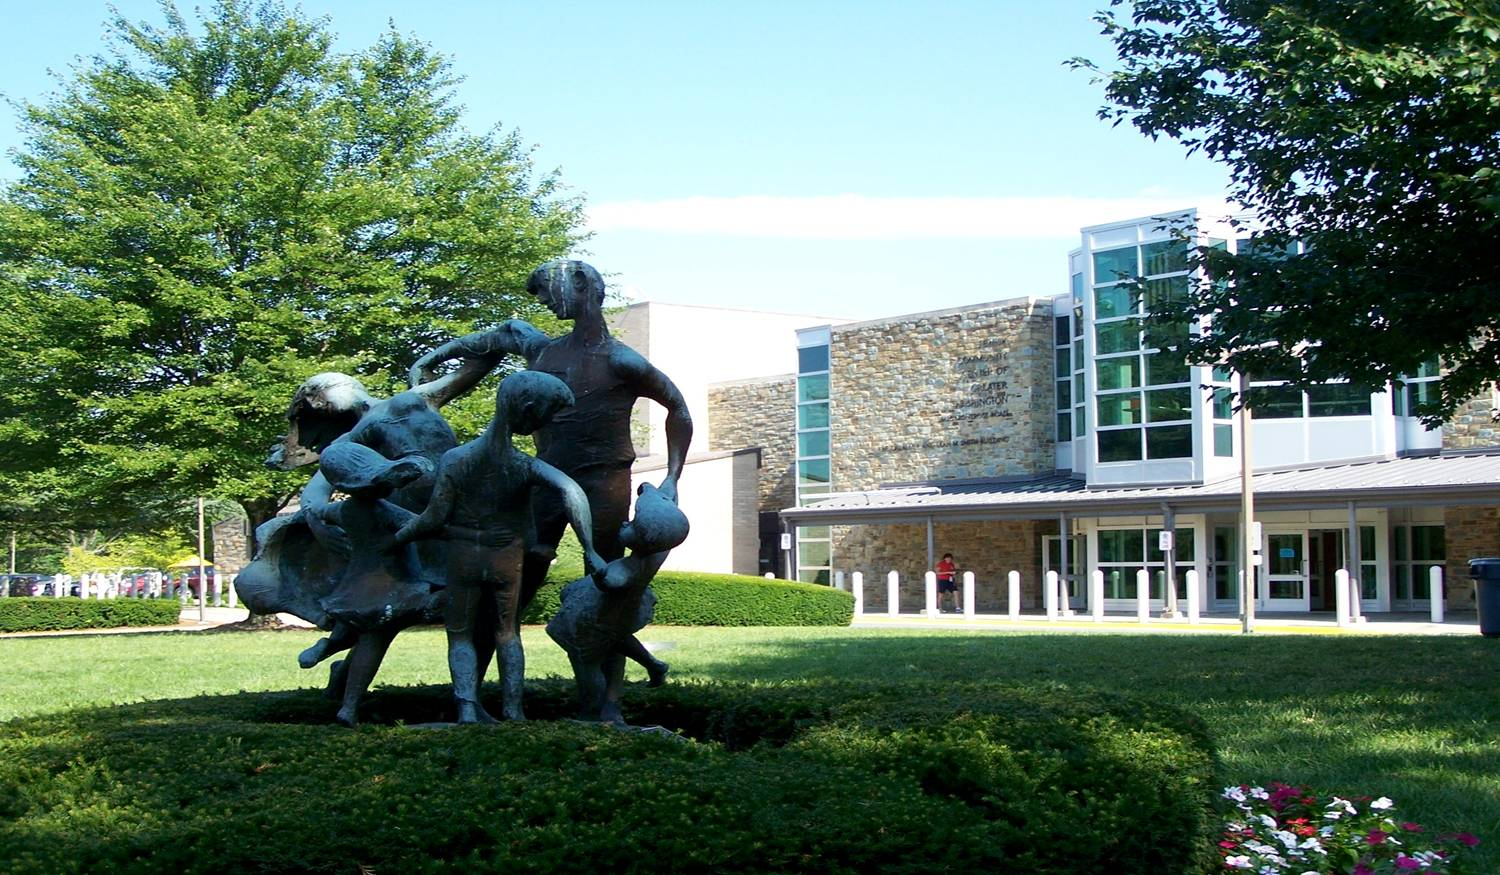 The Jewish Community Center of Greater Washington